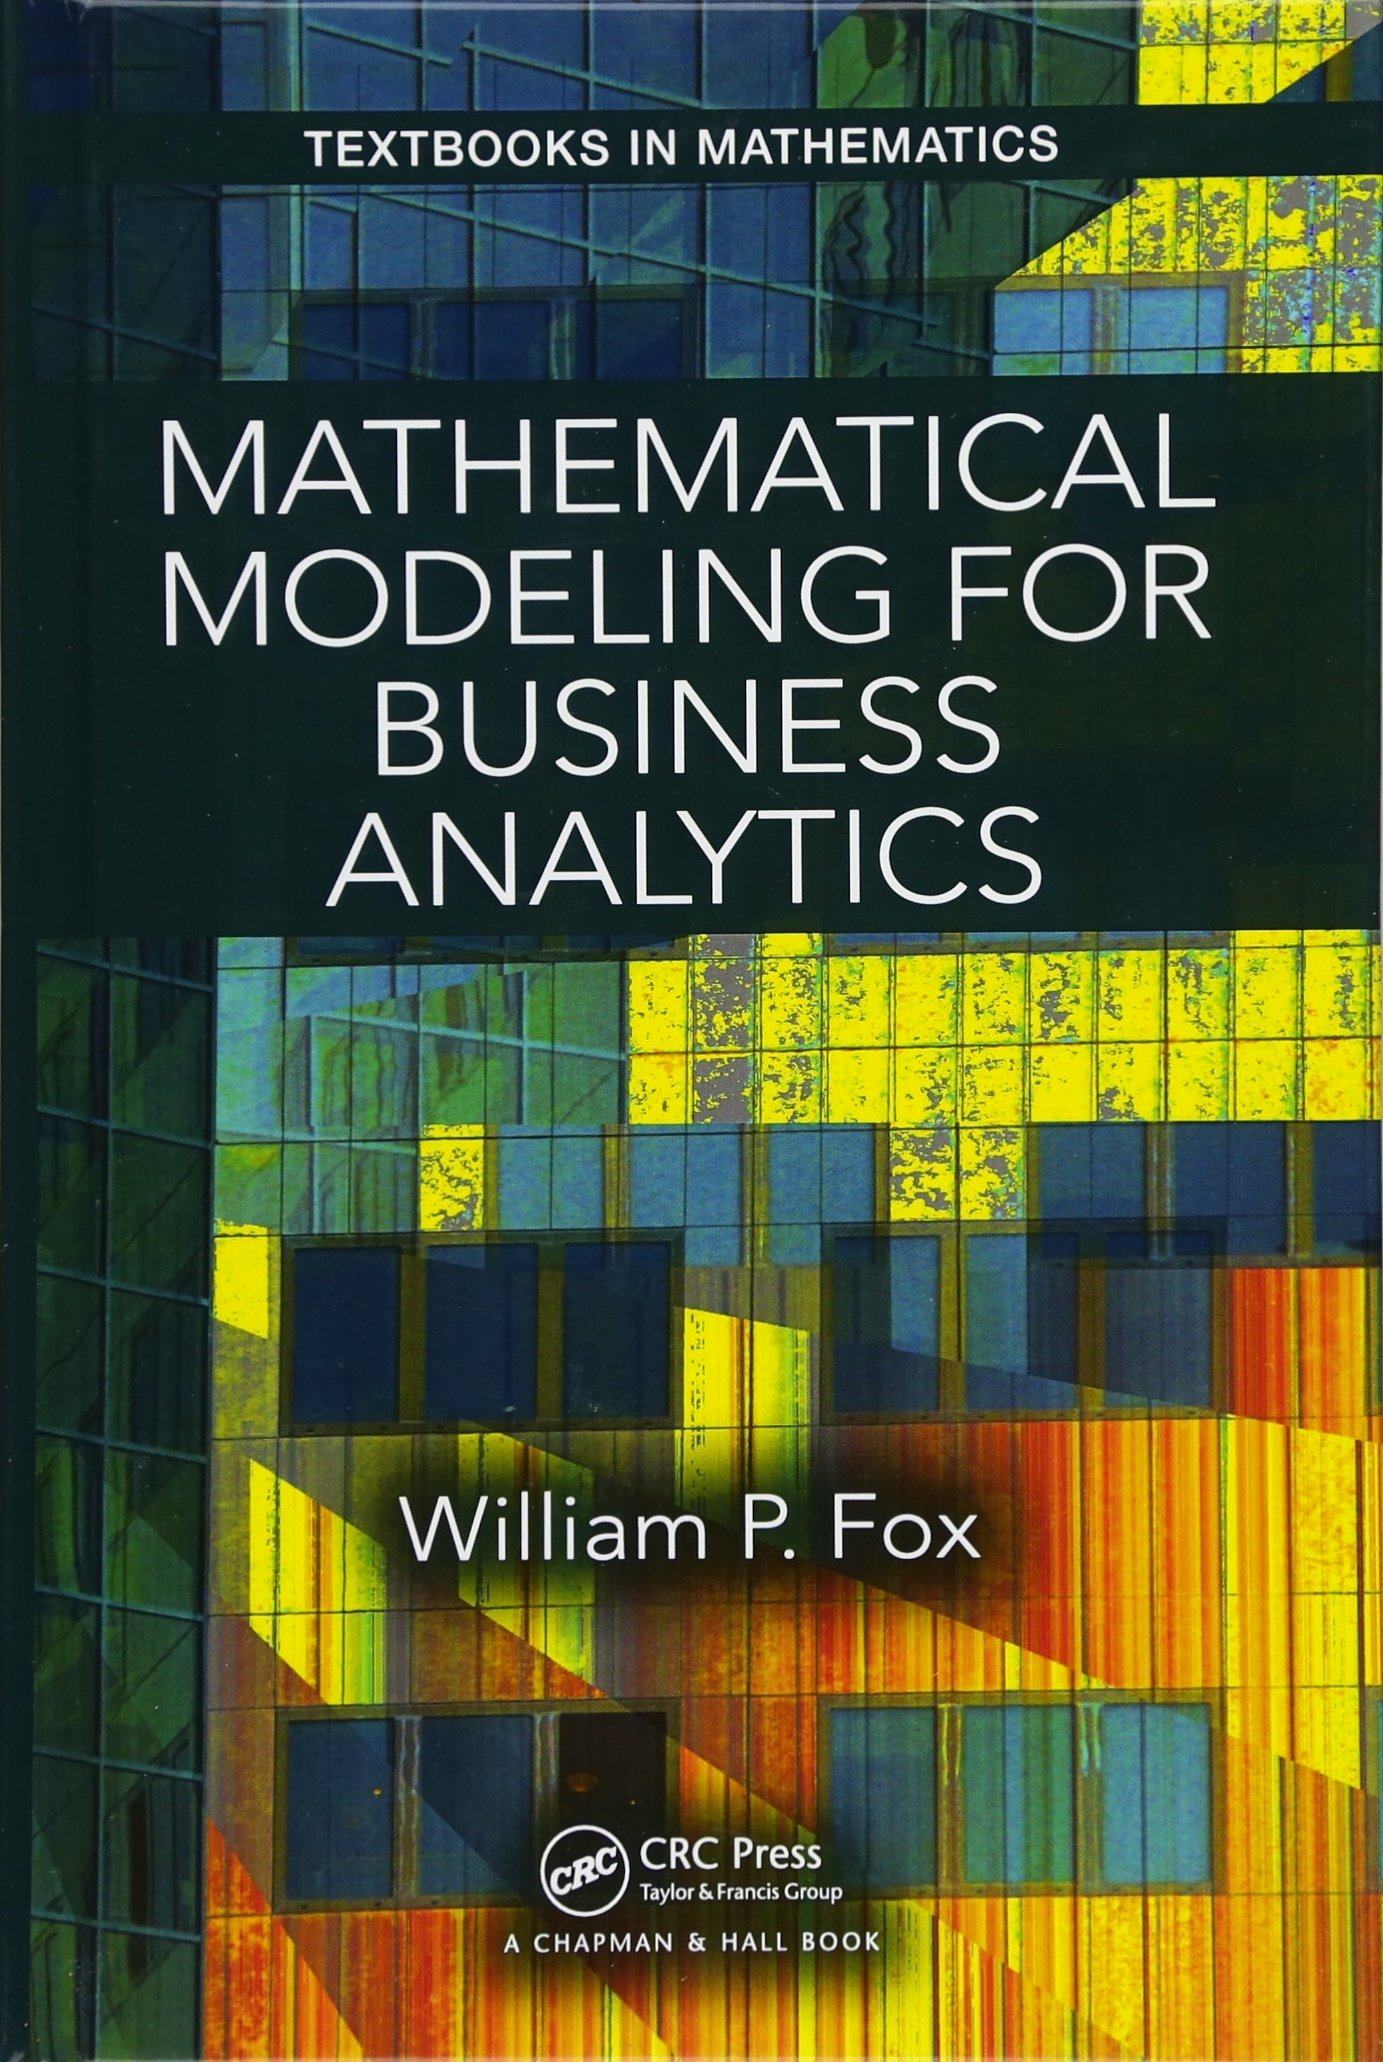 MATHEMATICAL MODELING FOR BUSINESS ANALYTICS (TEXTBOOKS IN MATHEMATICS) (HC)